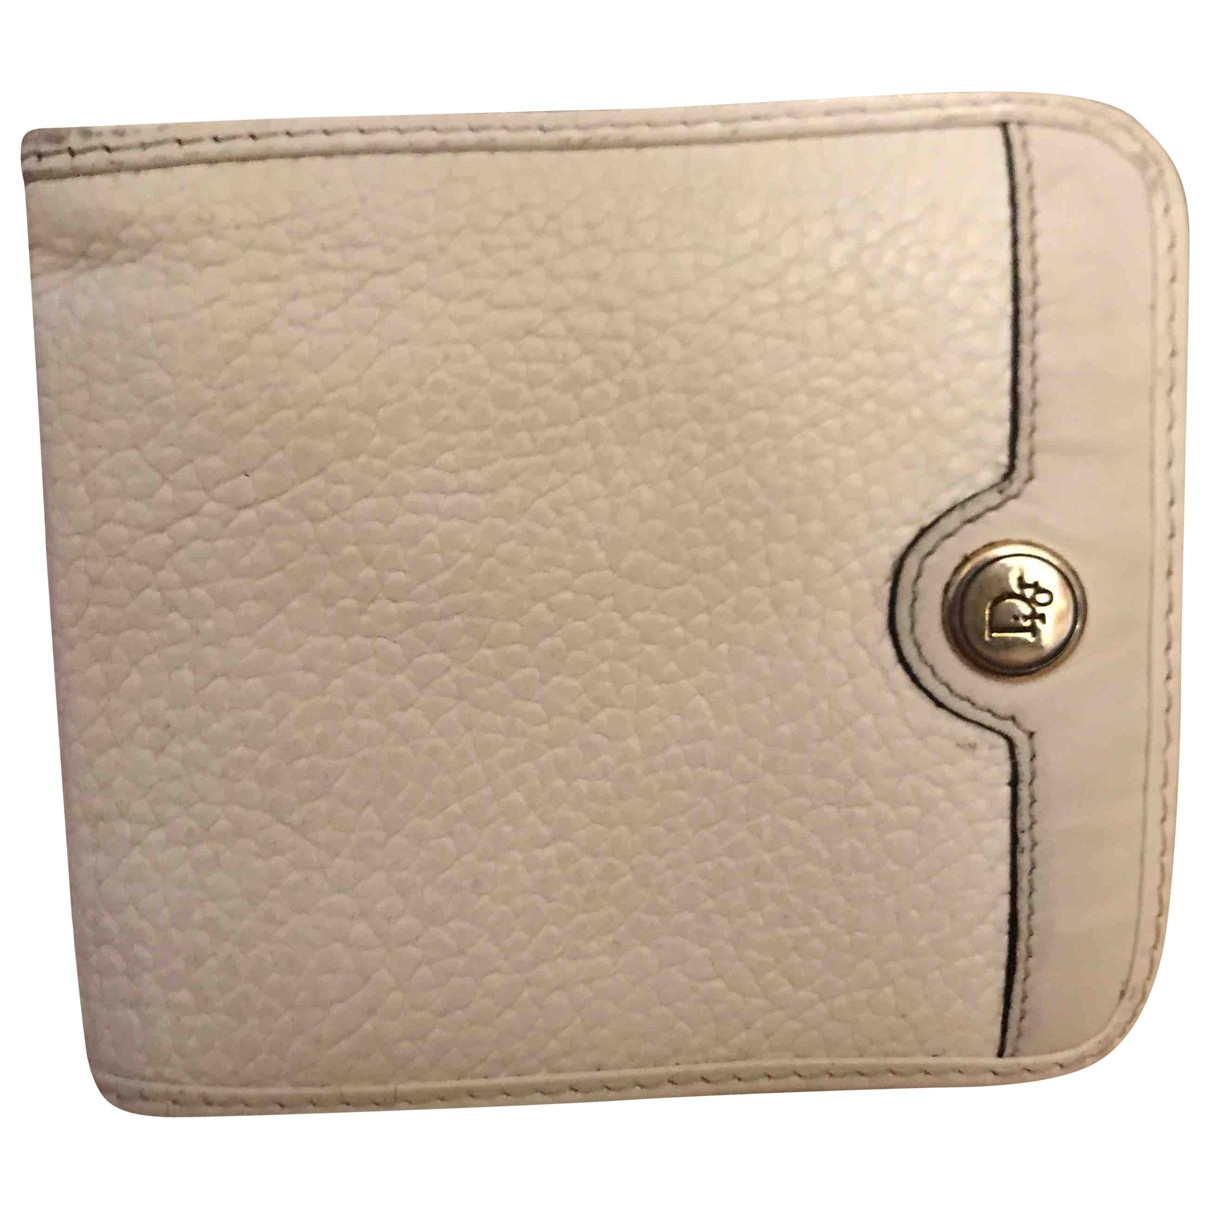 Dior \N White Leather wallet for Women \N